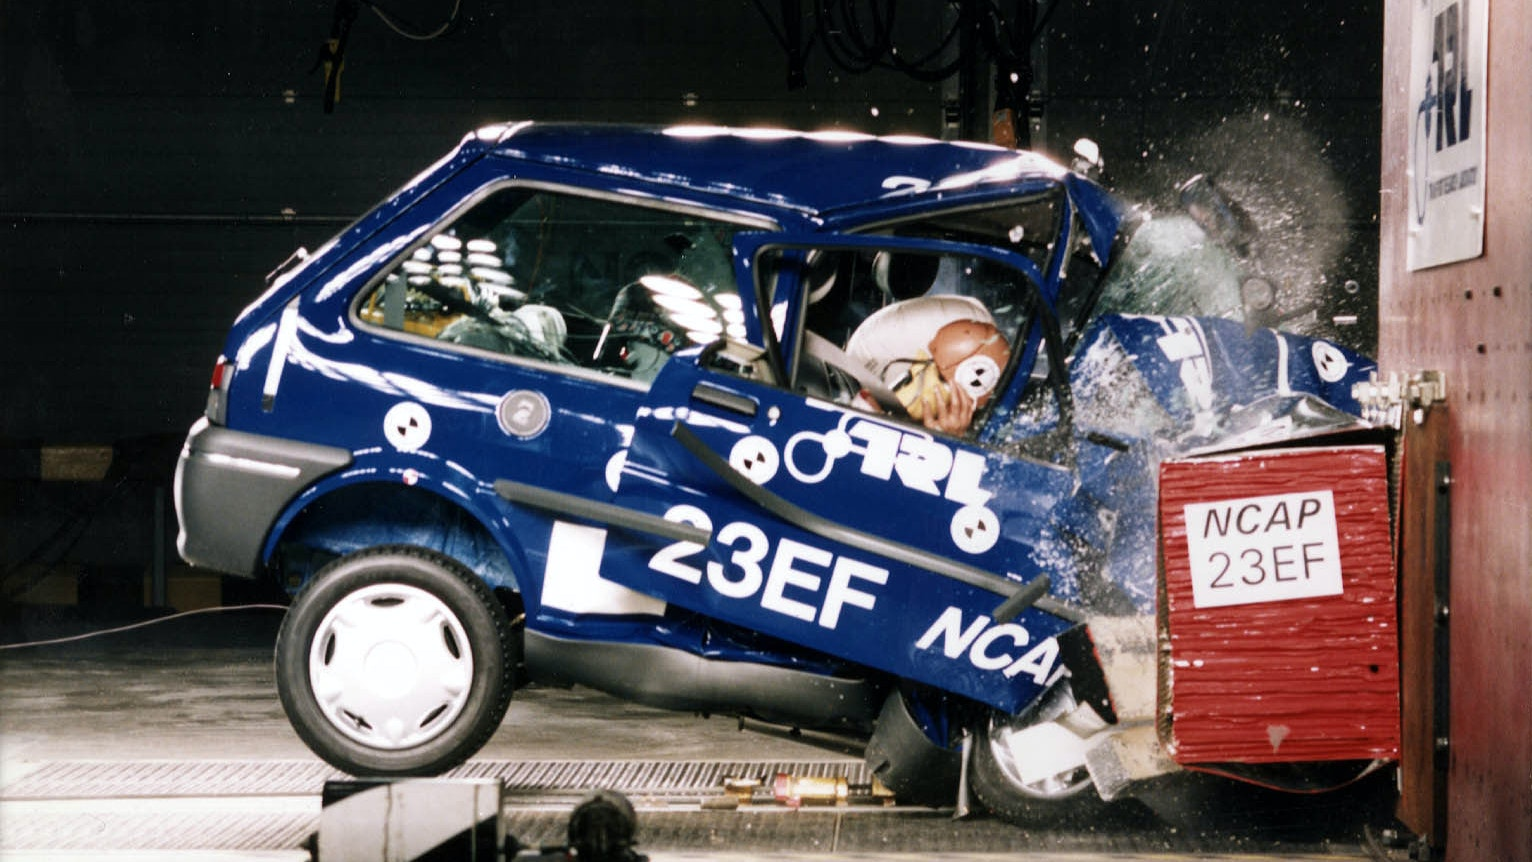 How has car safety changed over the years?